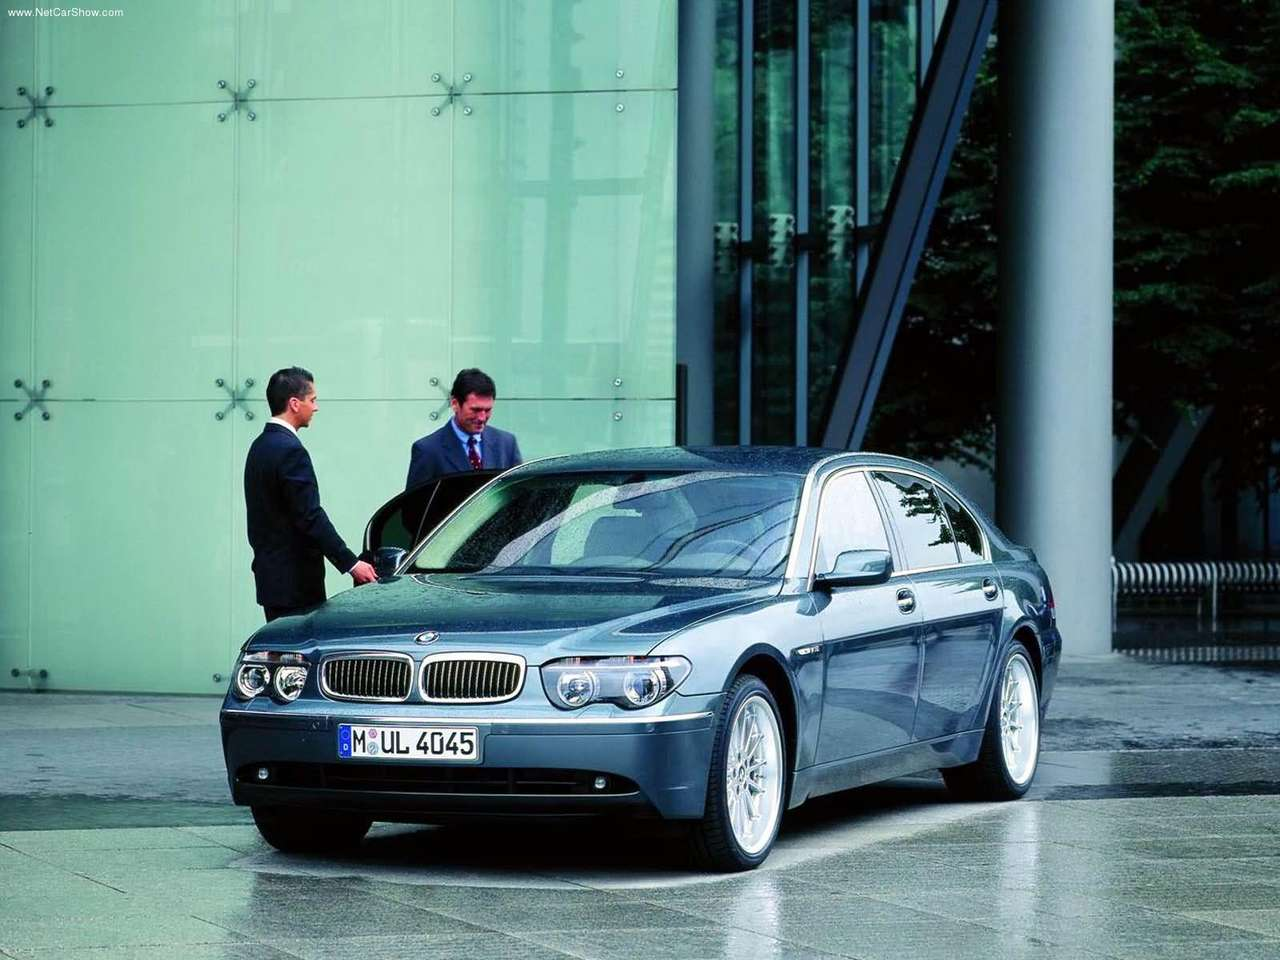 BMW - Auto twenty-first century: 2003 BMW 760Li E66-2.bp.blogspot.com